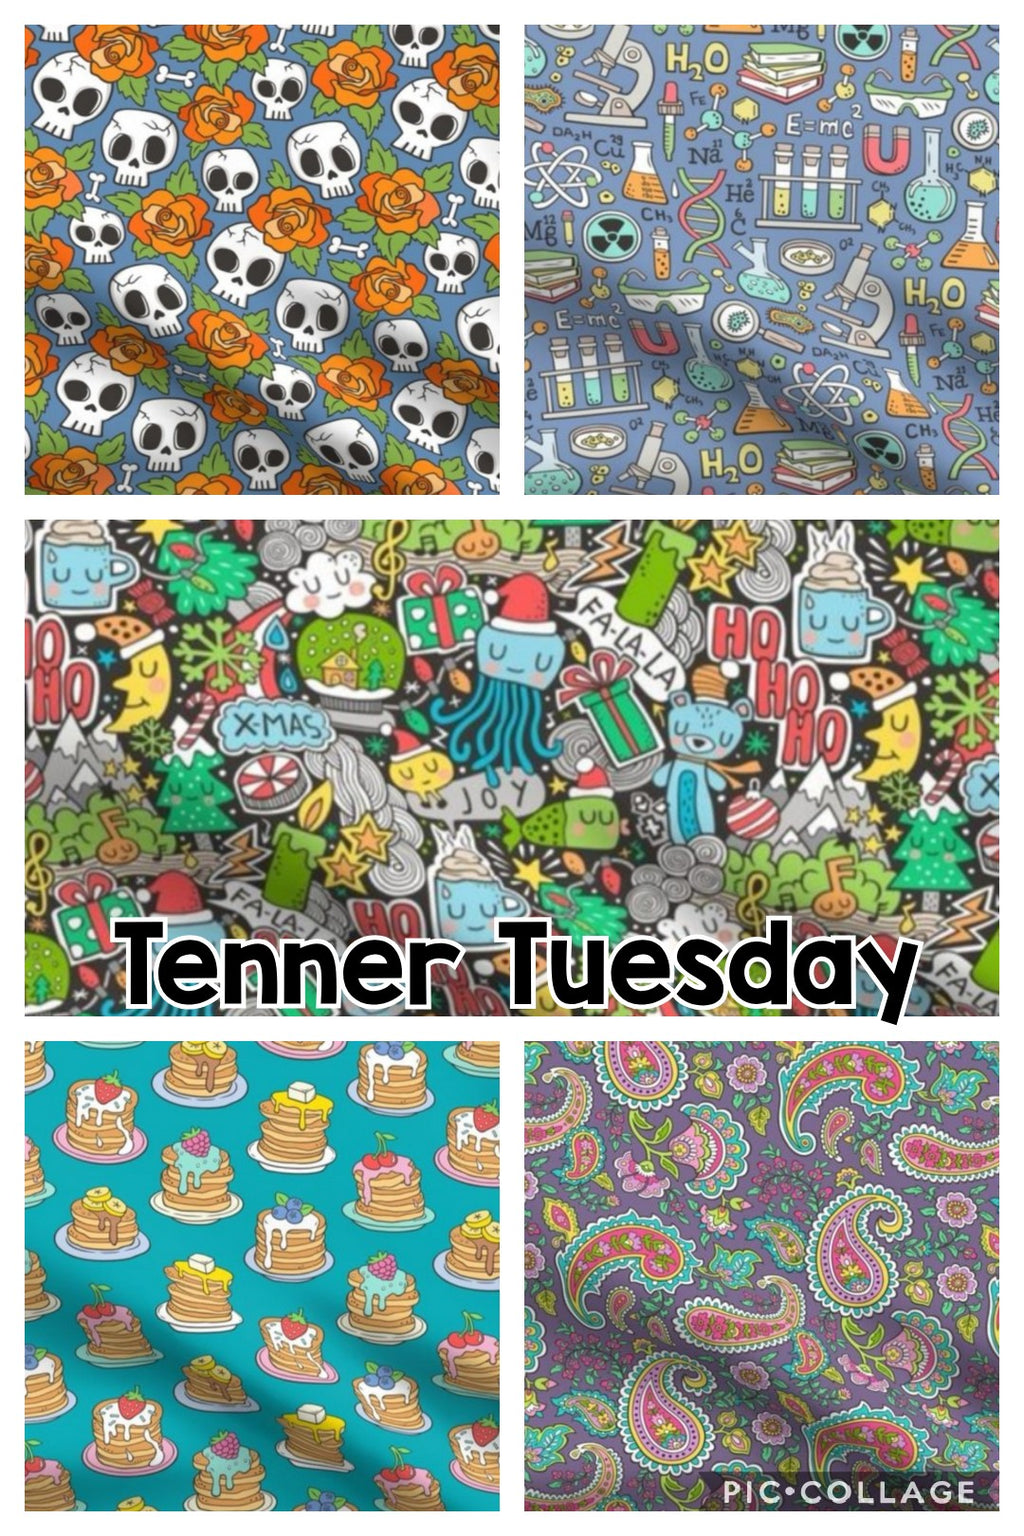 Assorted Tenner Tuesday